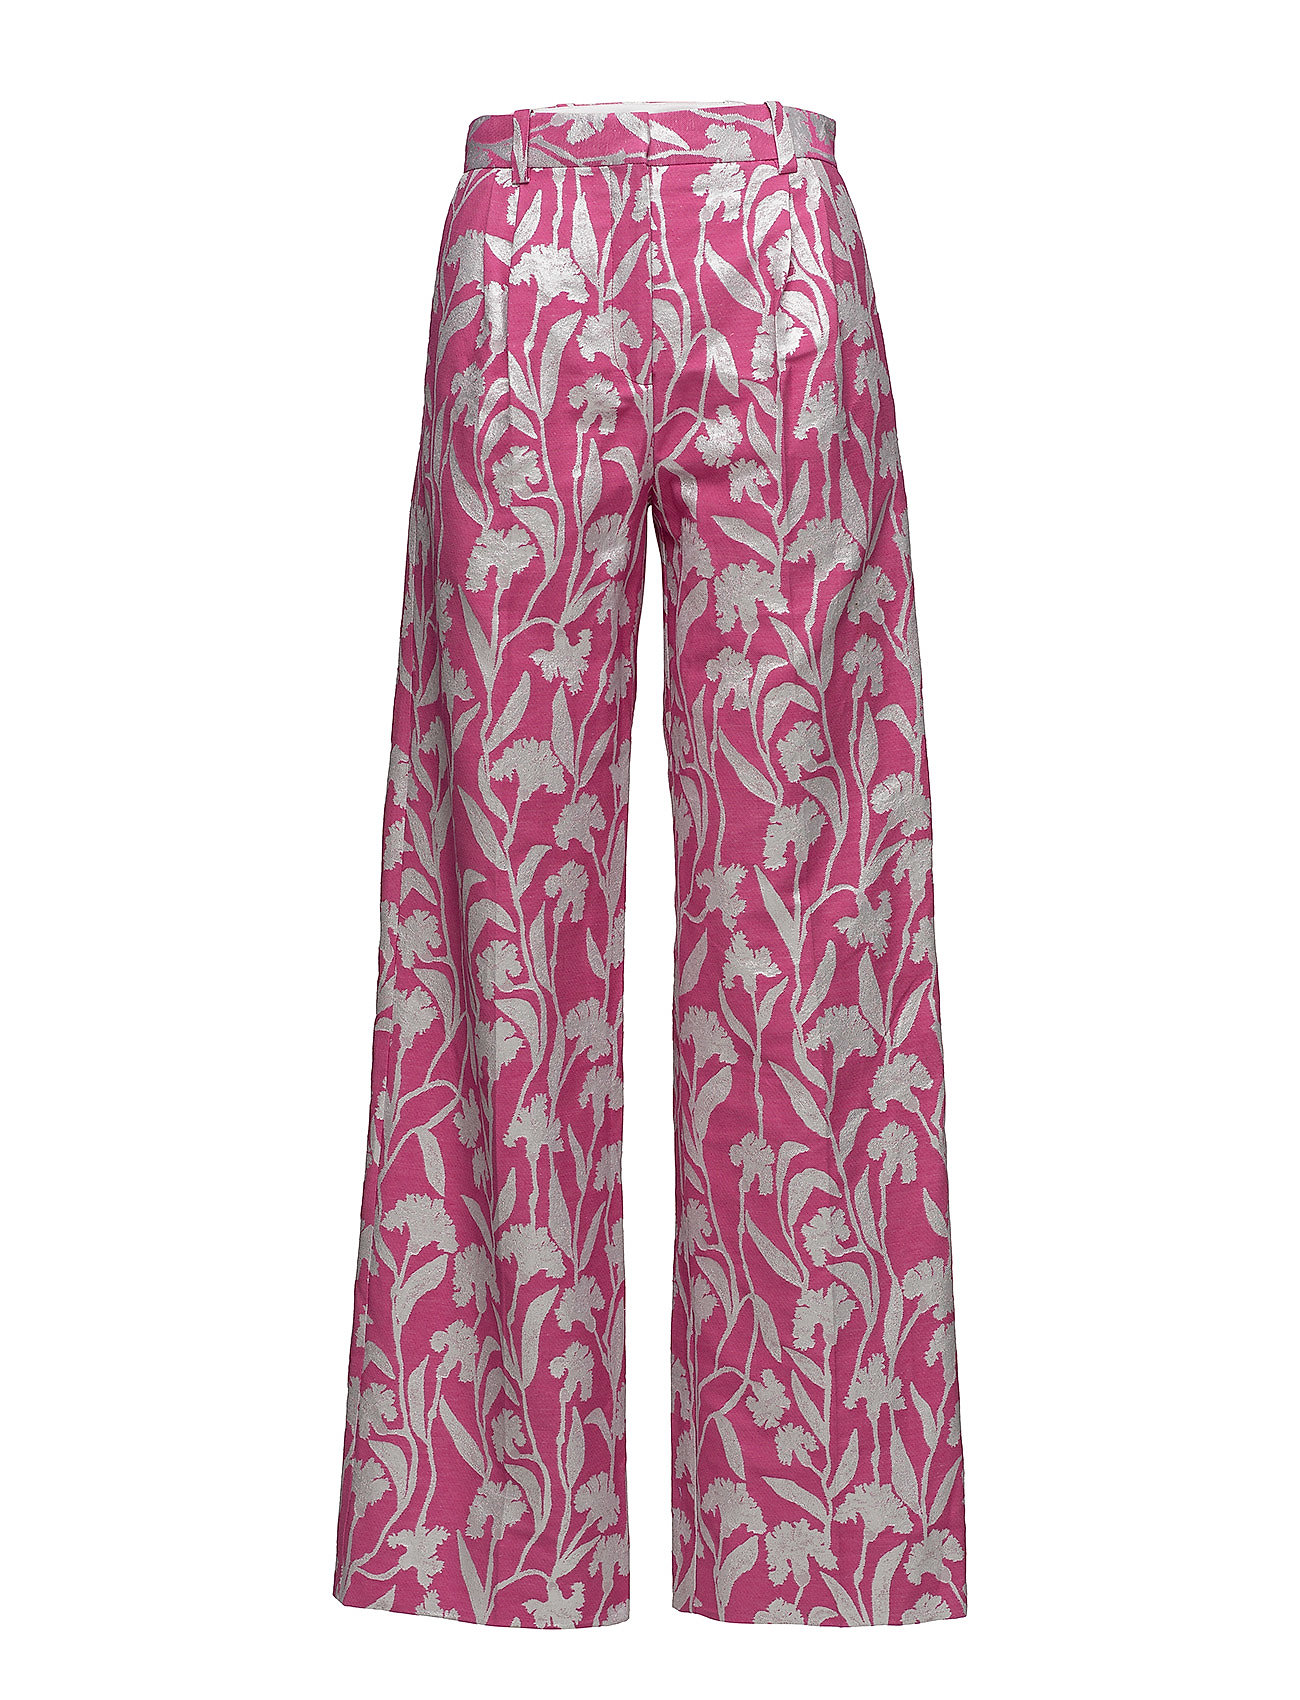 STINE GOYA Sonia, 348 Carnation Suiting - CARNATION FUCHSIA